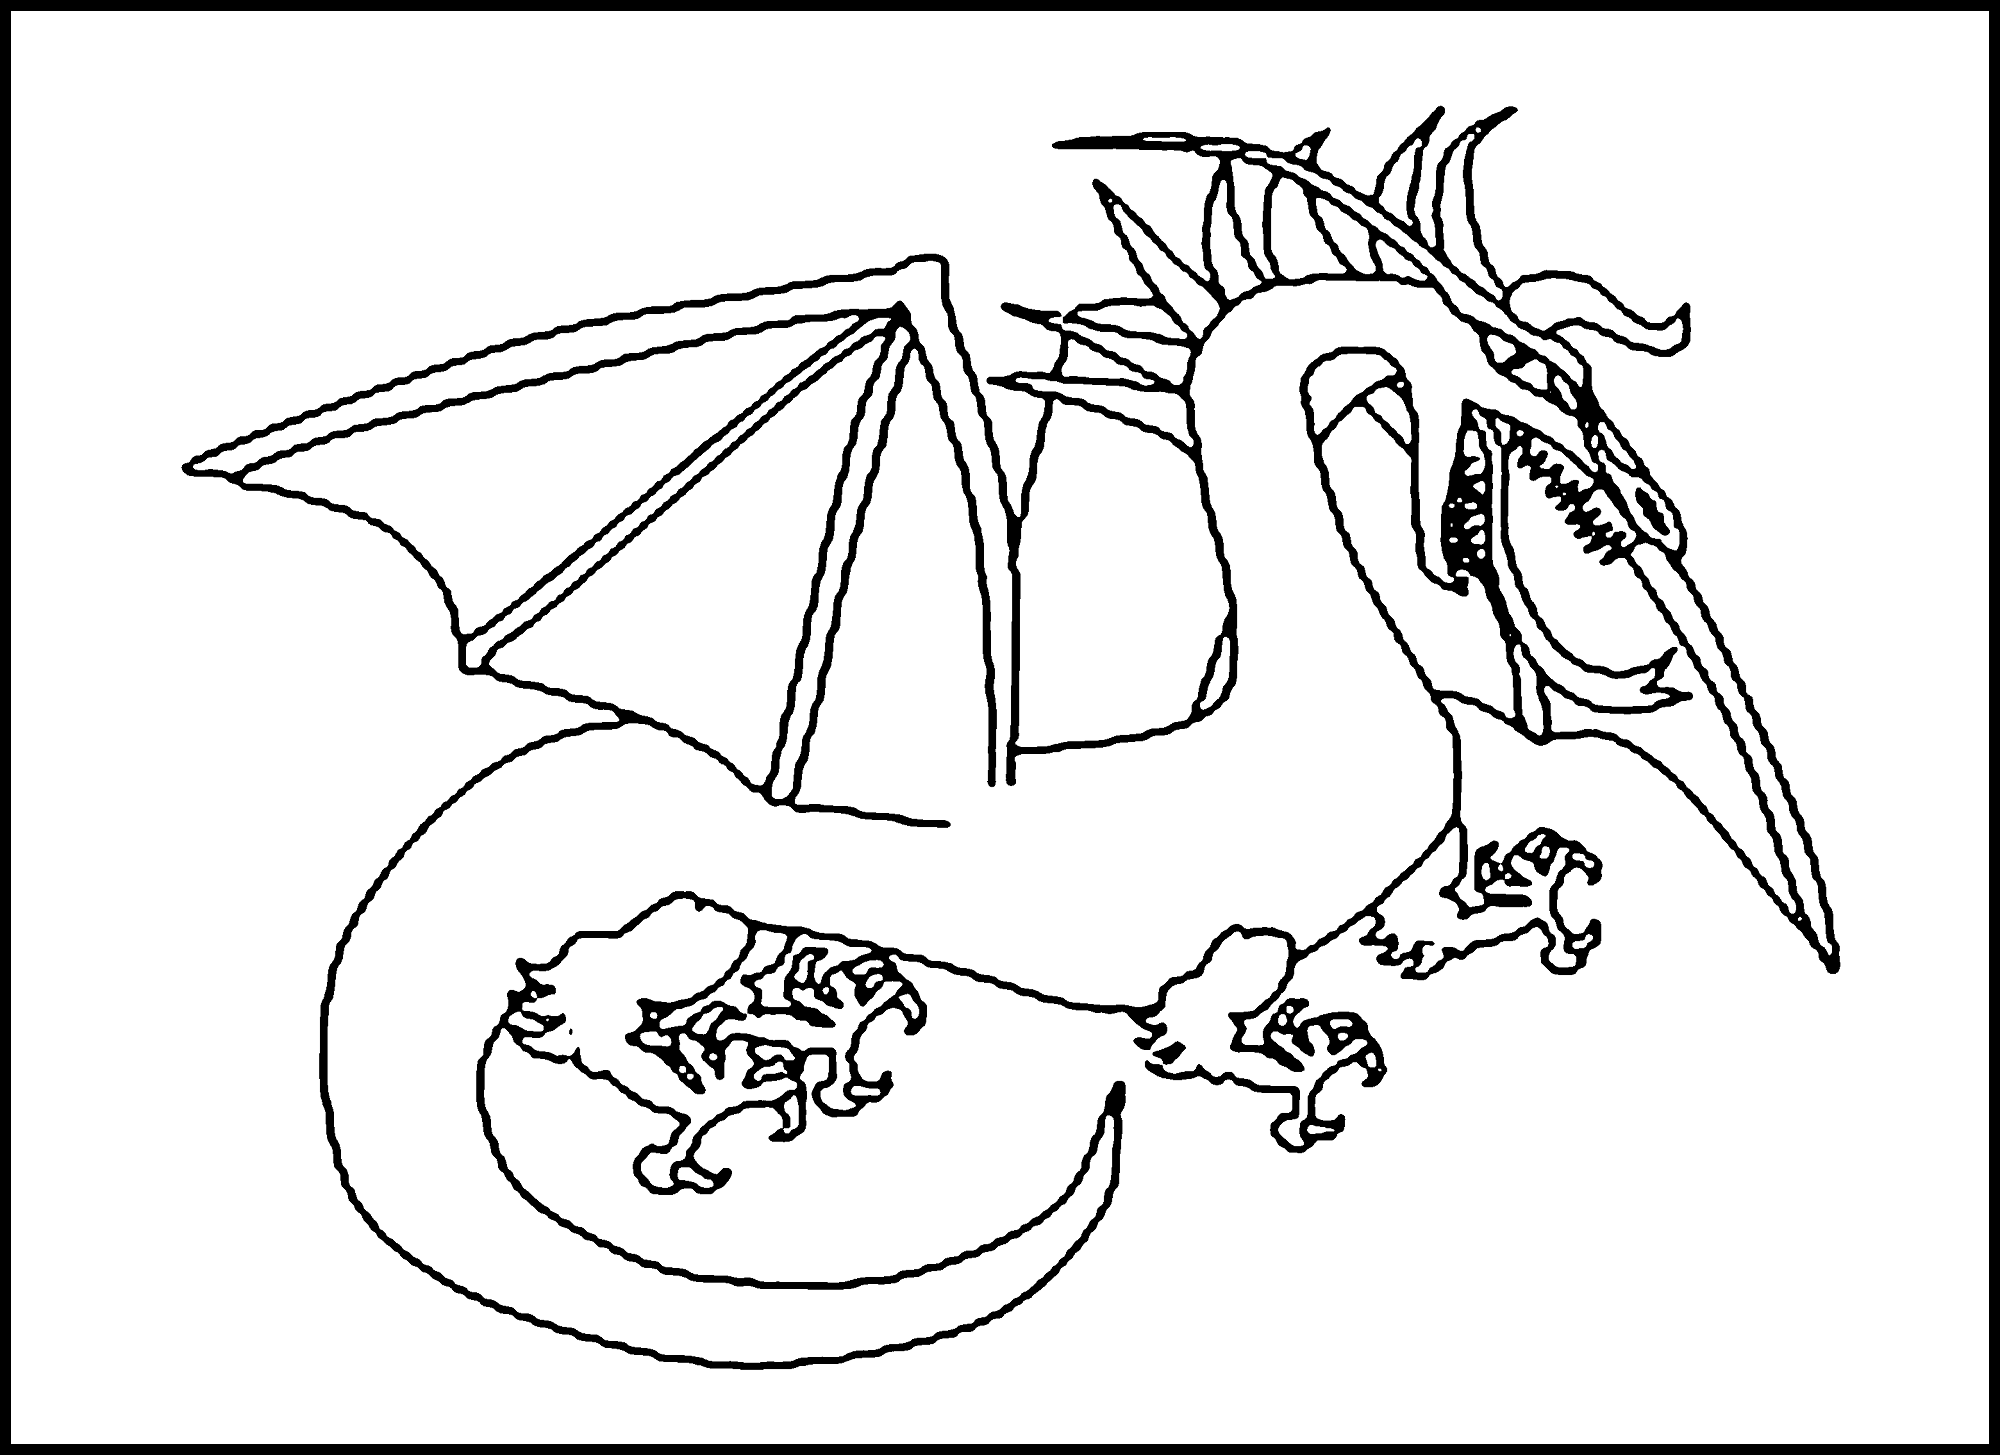 pictures of dragons for kids dragon drawing for kids at getdrawings free download kids for dragons of pictures